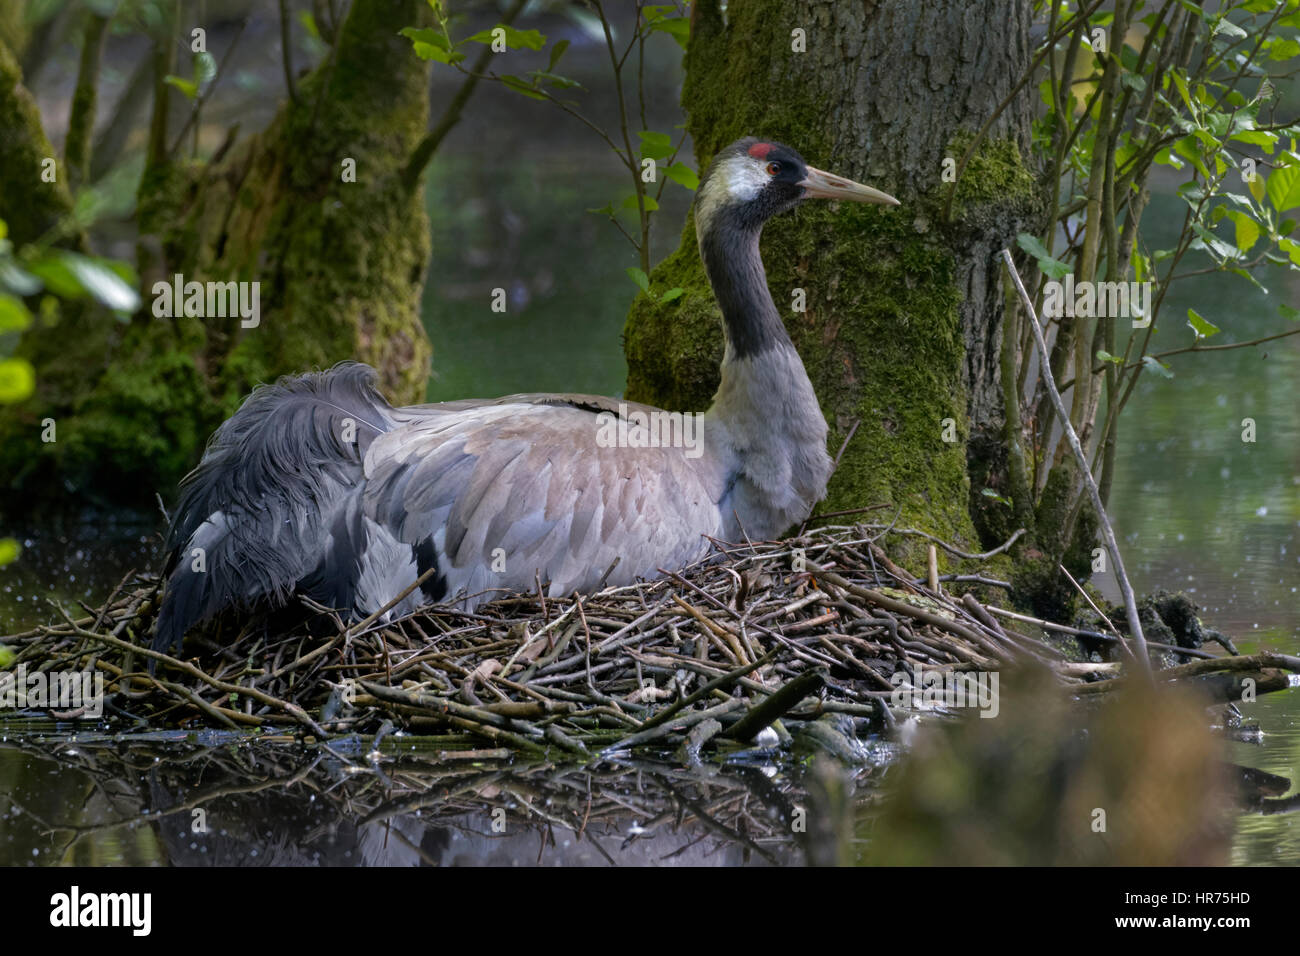 Common Crane, (Grus grus), incubating, Mecklenburg-Western Pomerania, Germany, Europe Stock Photo